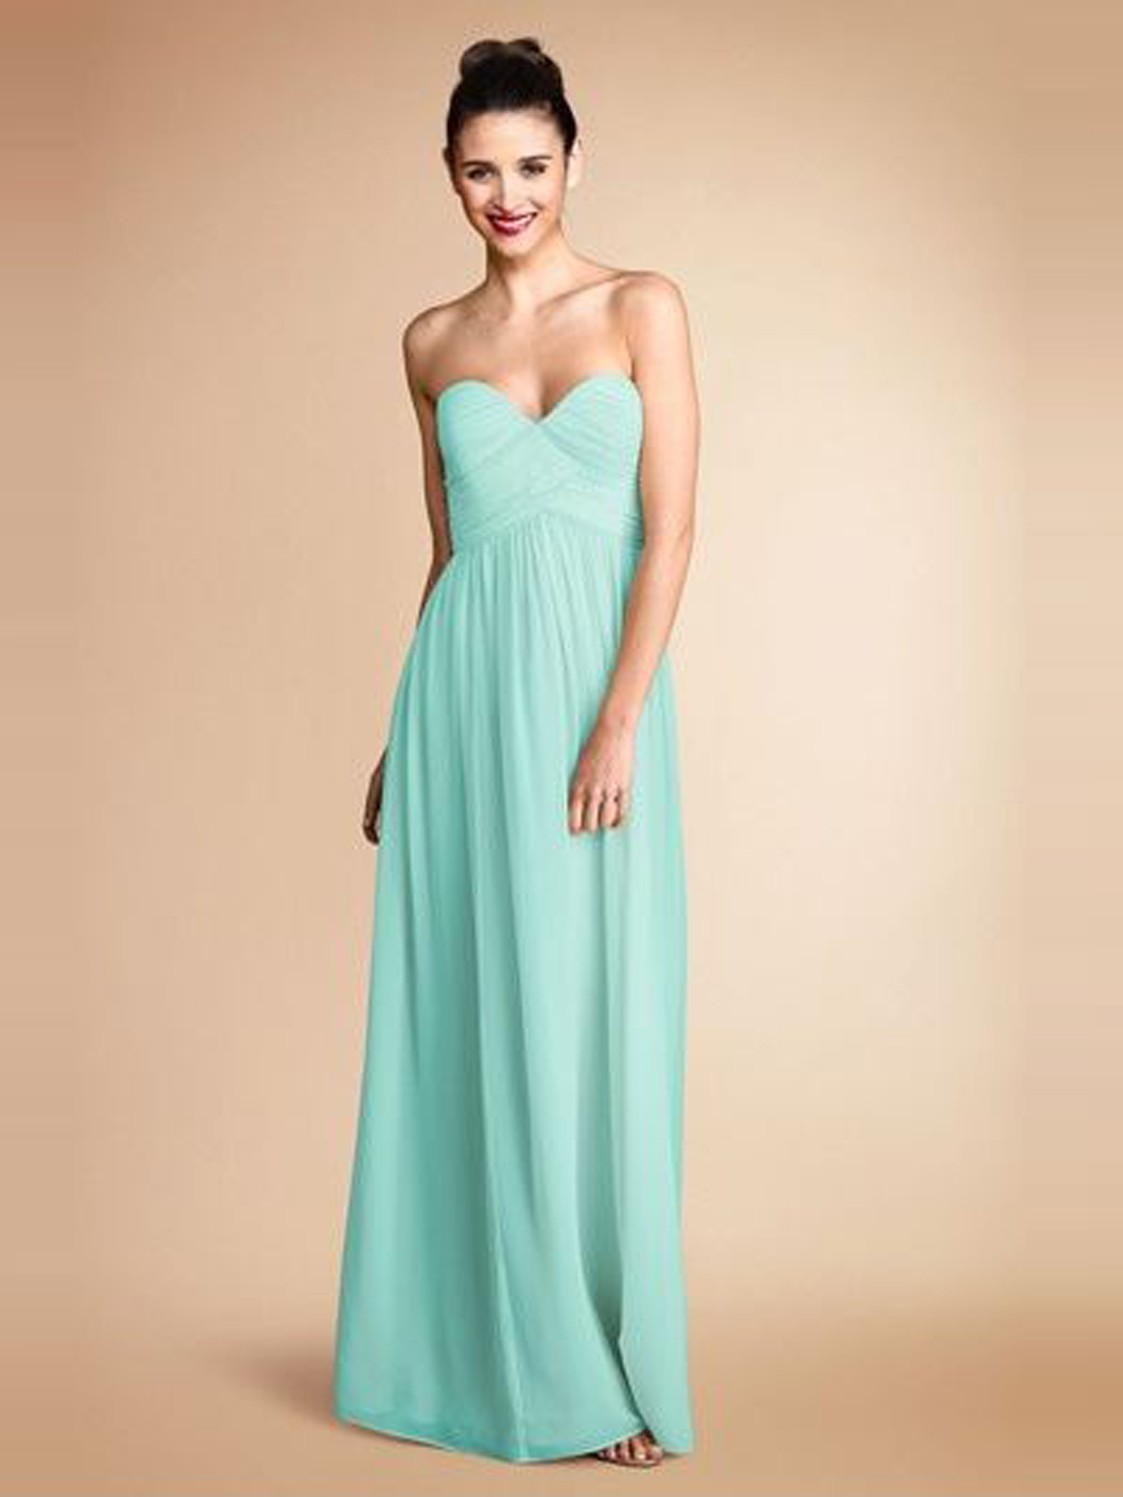 Chiffon Bridesmaid Dresses Dressed Up Girl